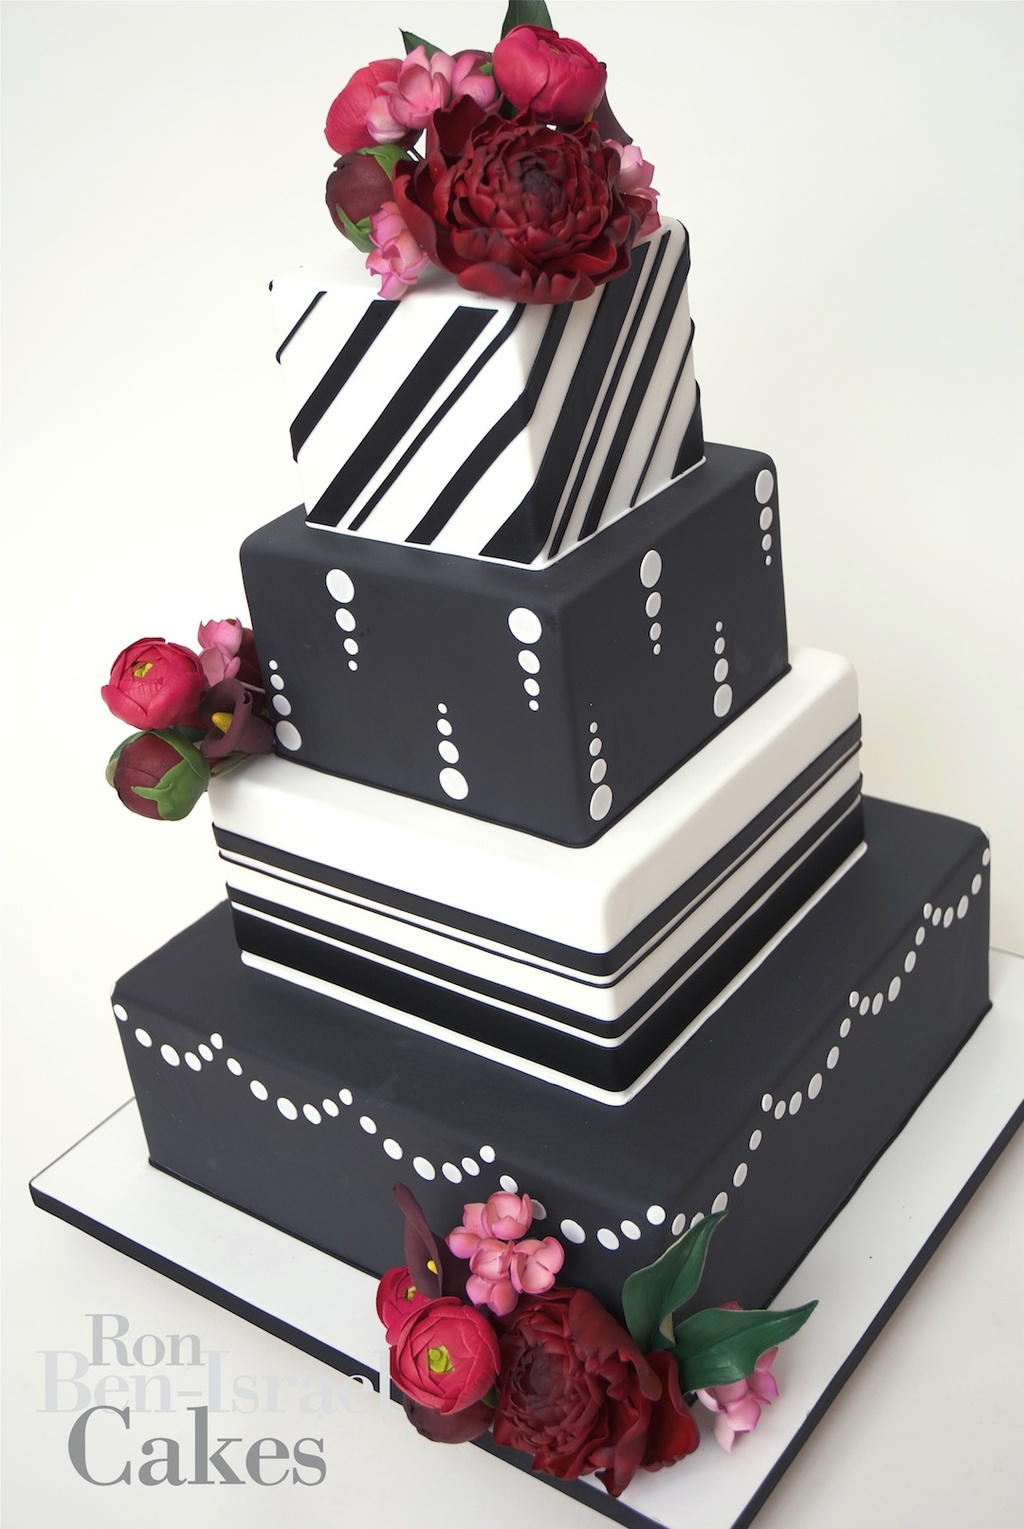 Wedding-cake-inspiration-ron-ben-isreal-wedding-cakes-black-white-red.original.full